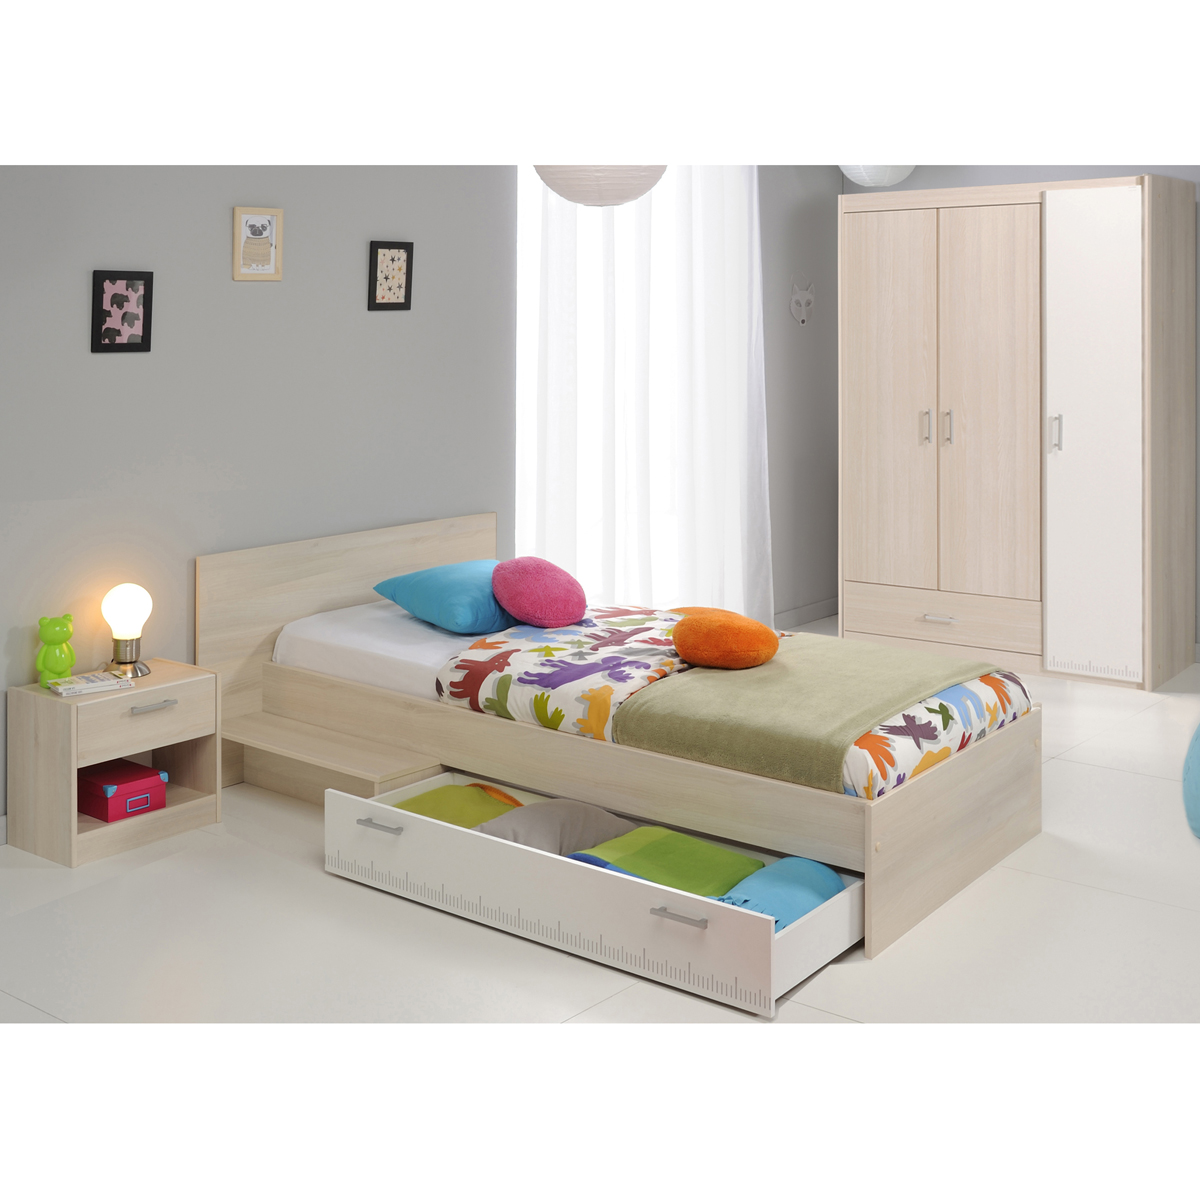 jugendzimmer charly 14 3 teilig kinderzimmer nako bett schrank akazie wei. Black Bedroom Furniture Sets. Home Design Ideas